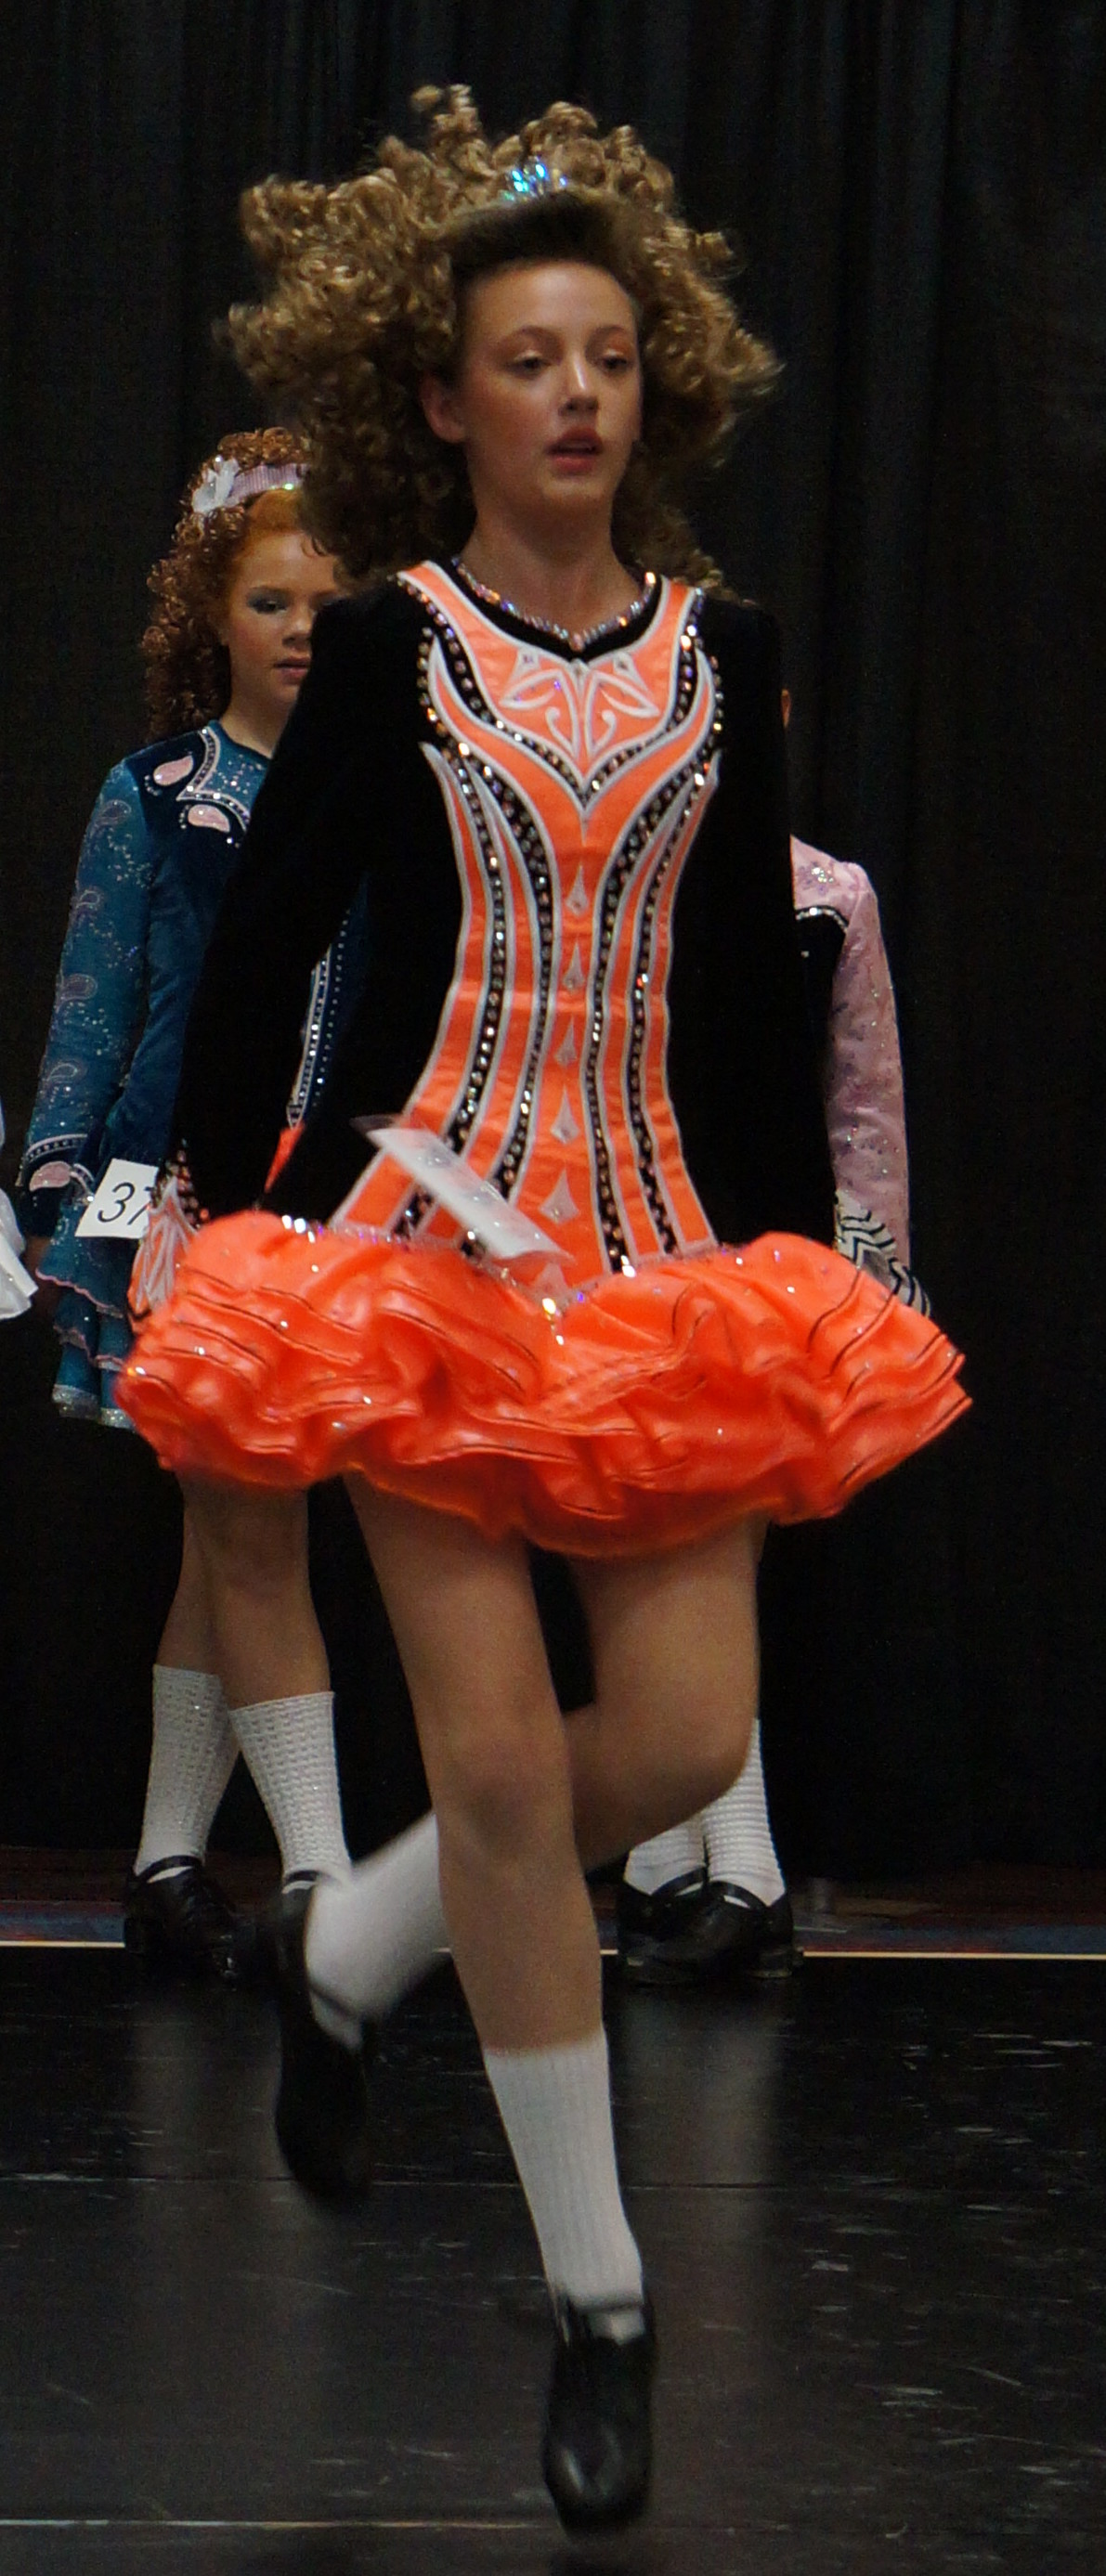 Jordan, competitive Irish dancer